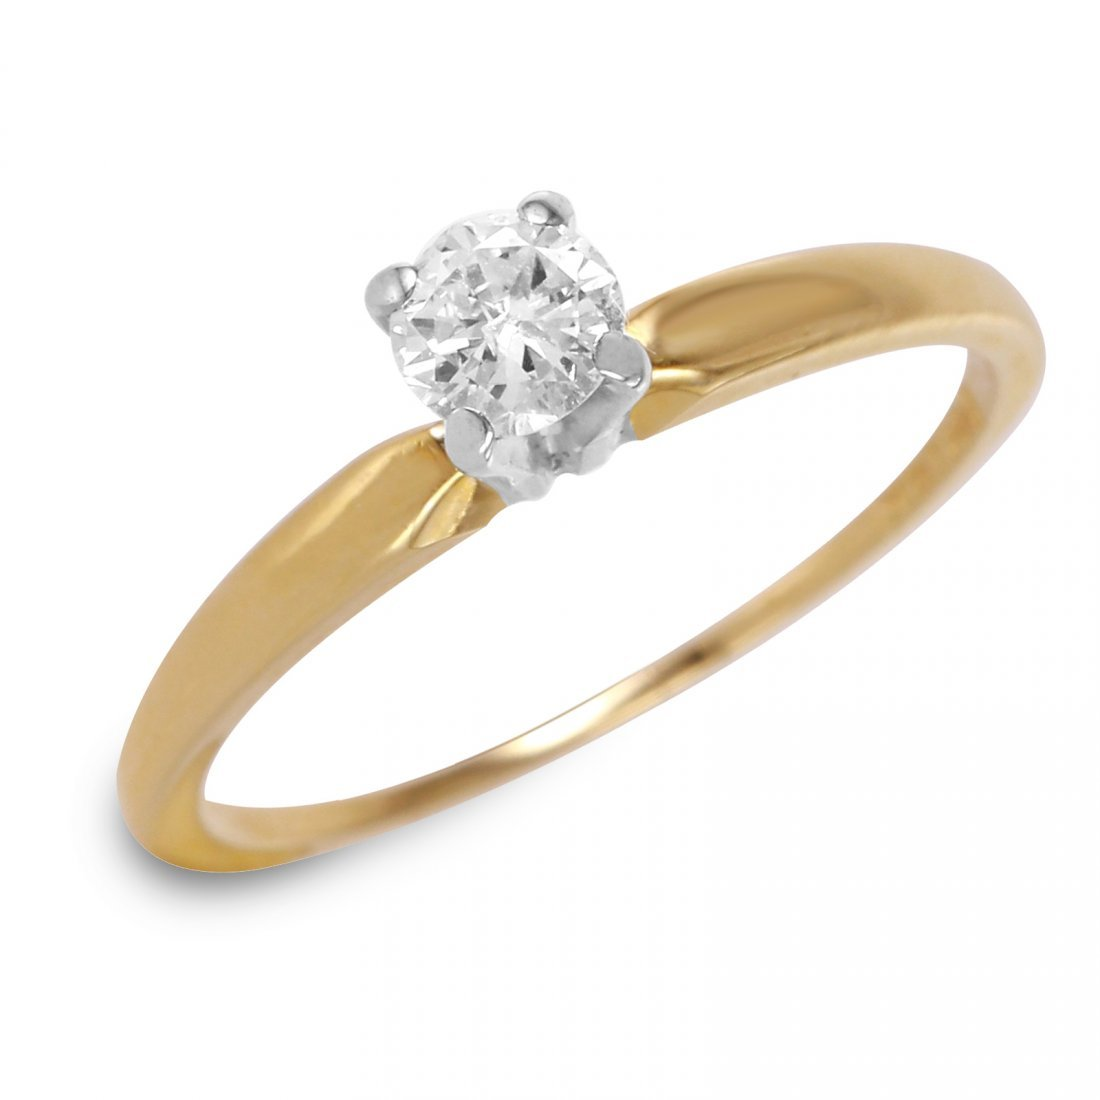 14K Yellow Gold Diamond Solitaire Ring, 0.25 cts